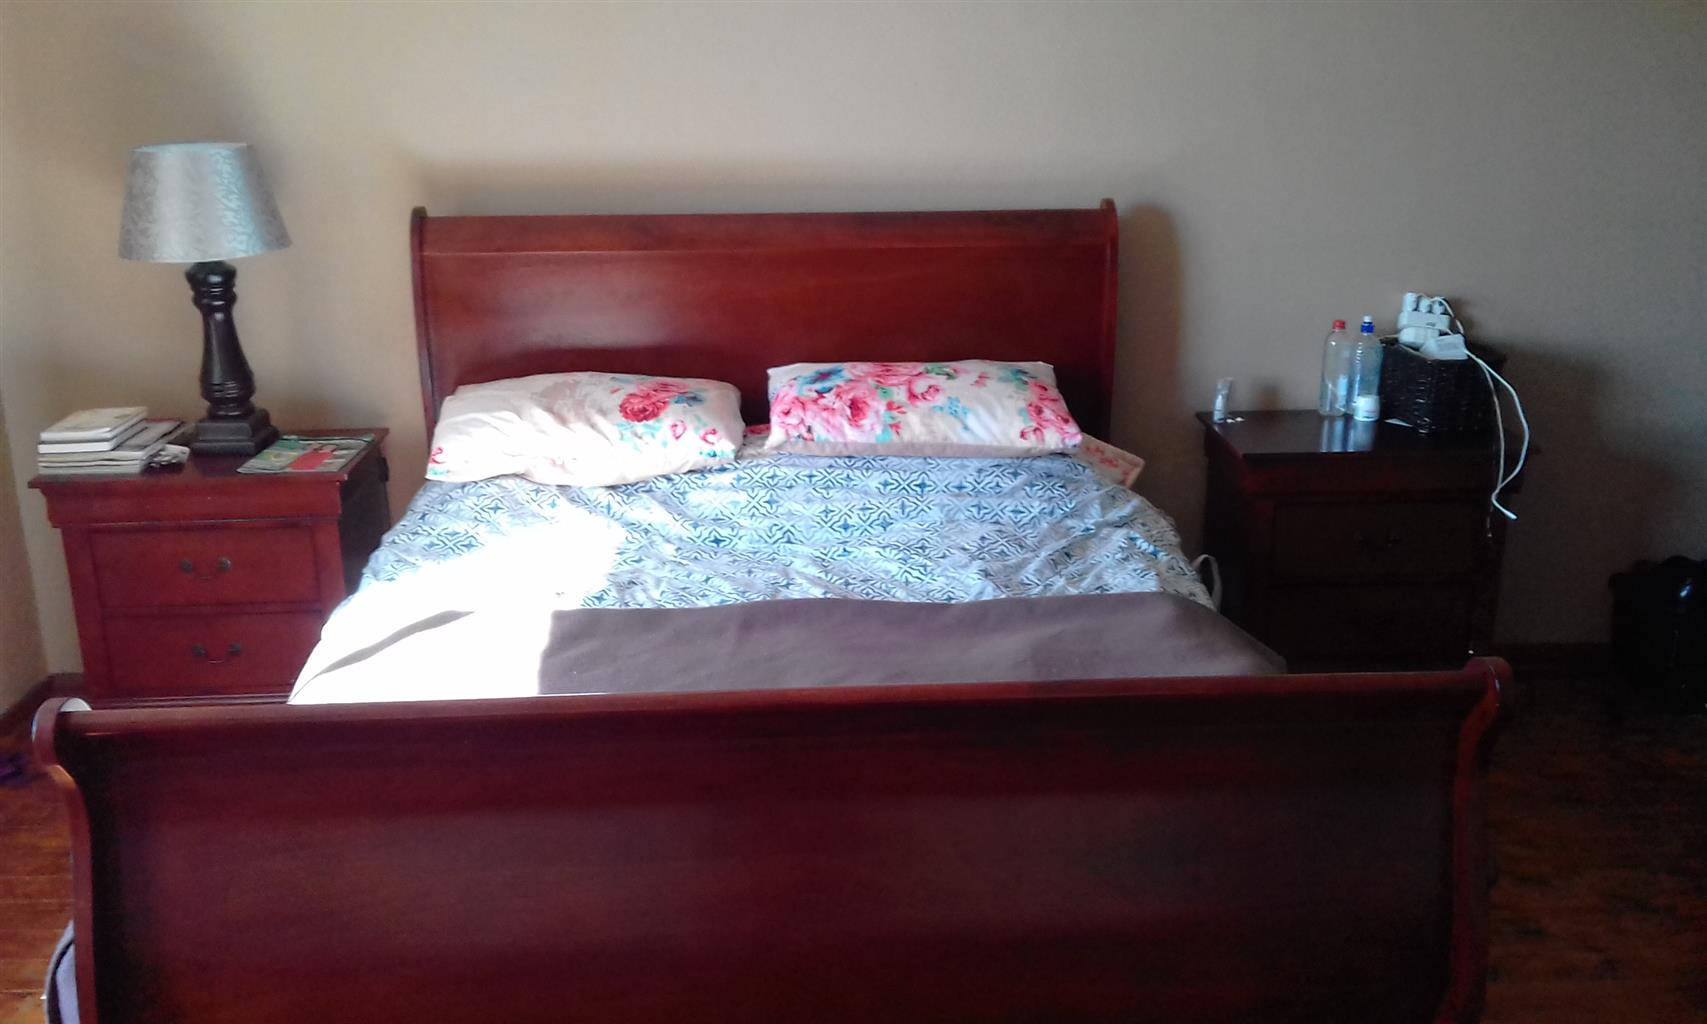 Dressing A Bed Slay Bed And Side Tables And Dressing Table Sold Seperately Price Neg Junk Mail